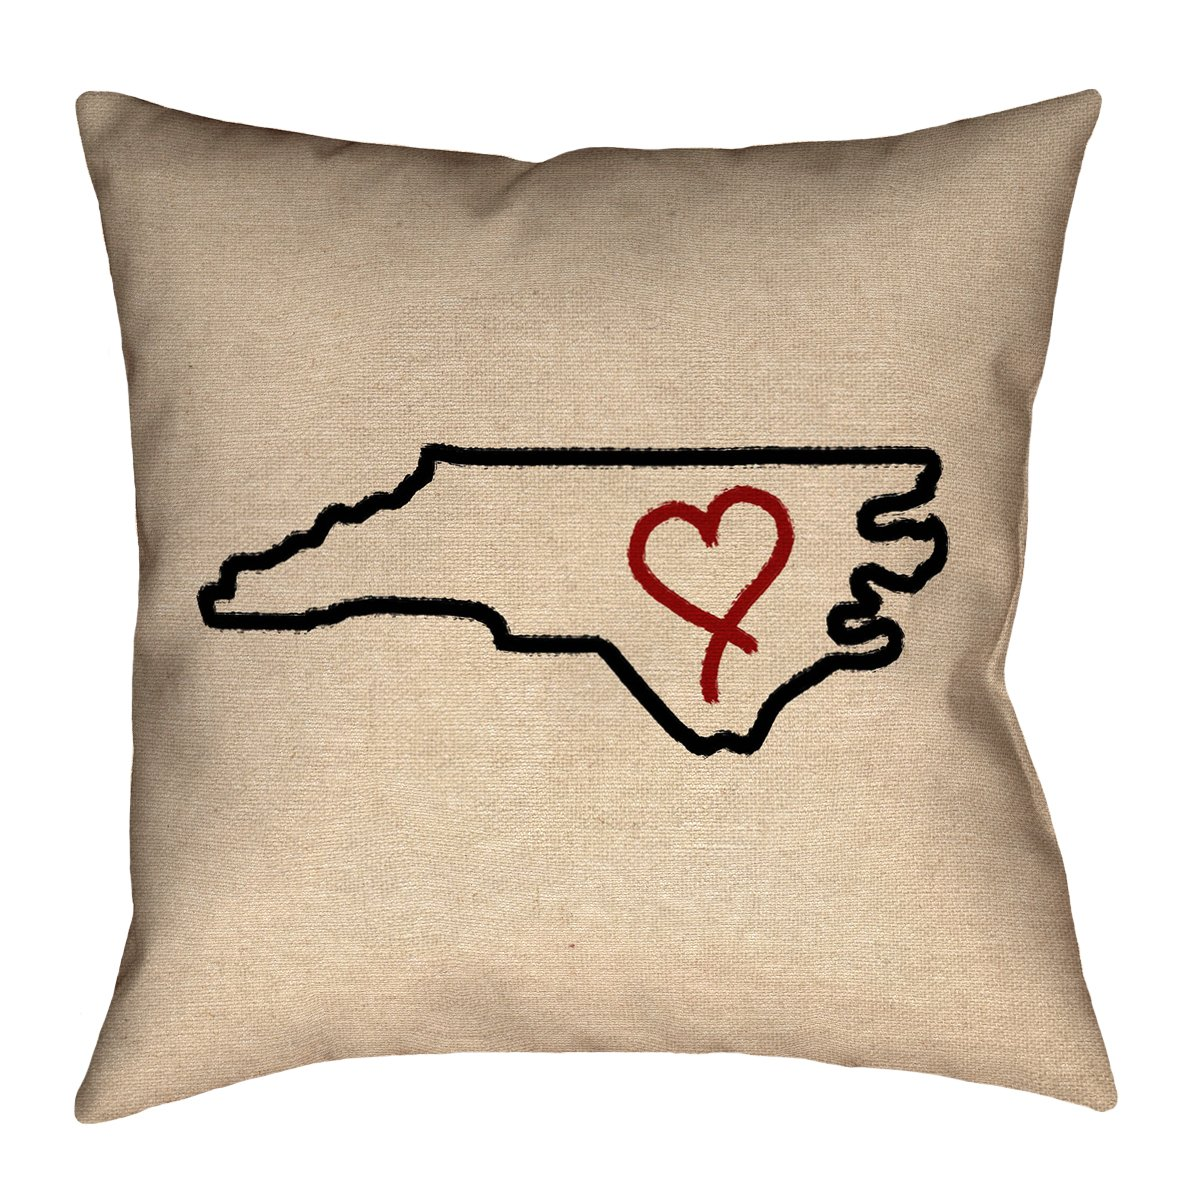 ArtVerse Katelyn Smith 26' x 26' Poly Twill Double Sided Print with Concealed Zipper & Insert North Carolina Love Pillow